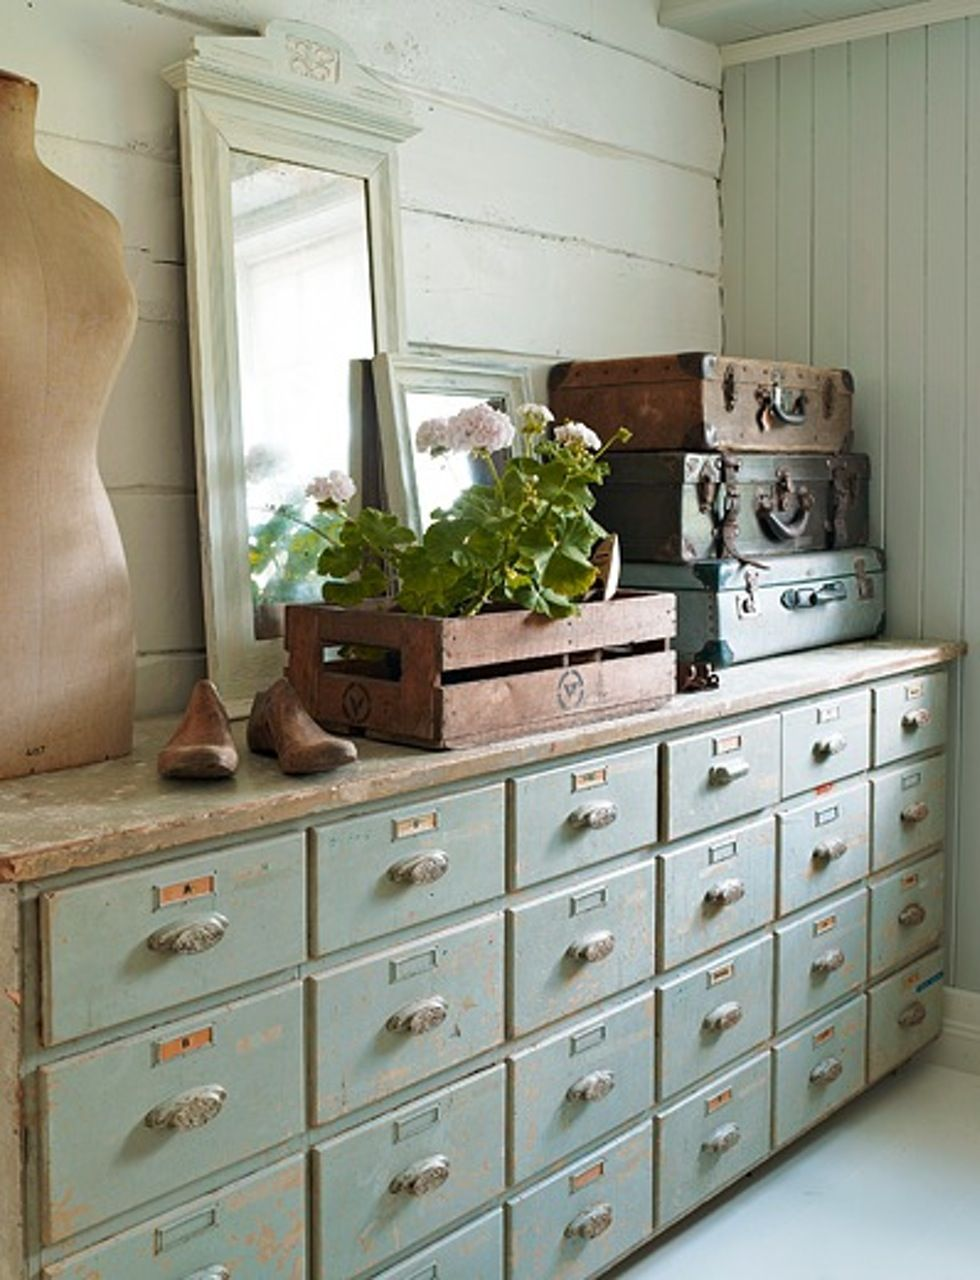 There is a dressing table mirror and lockers and drawersgalore - Gammel Kj Pmannsdisk